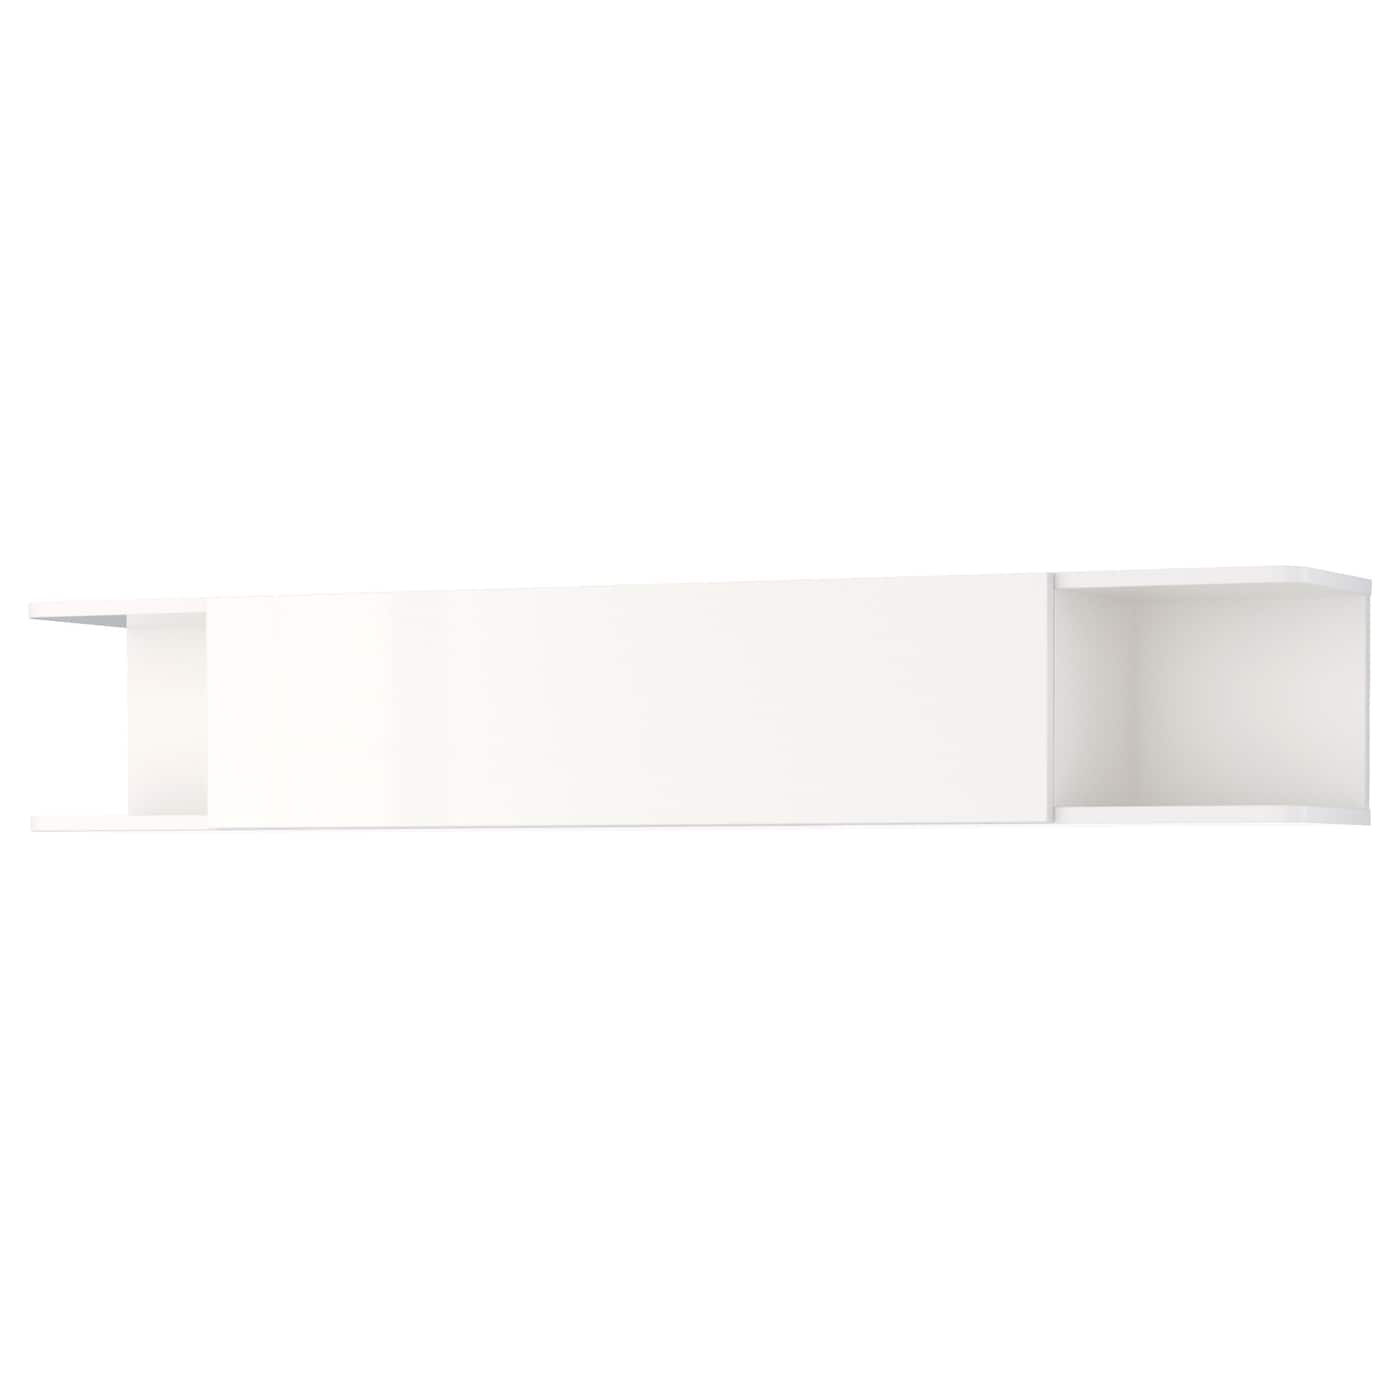 mostorp wall shelf high gloss white 160x27 cm ikea. Black Bedroom Furniture Sets. Home Design Ideas